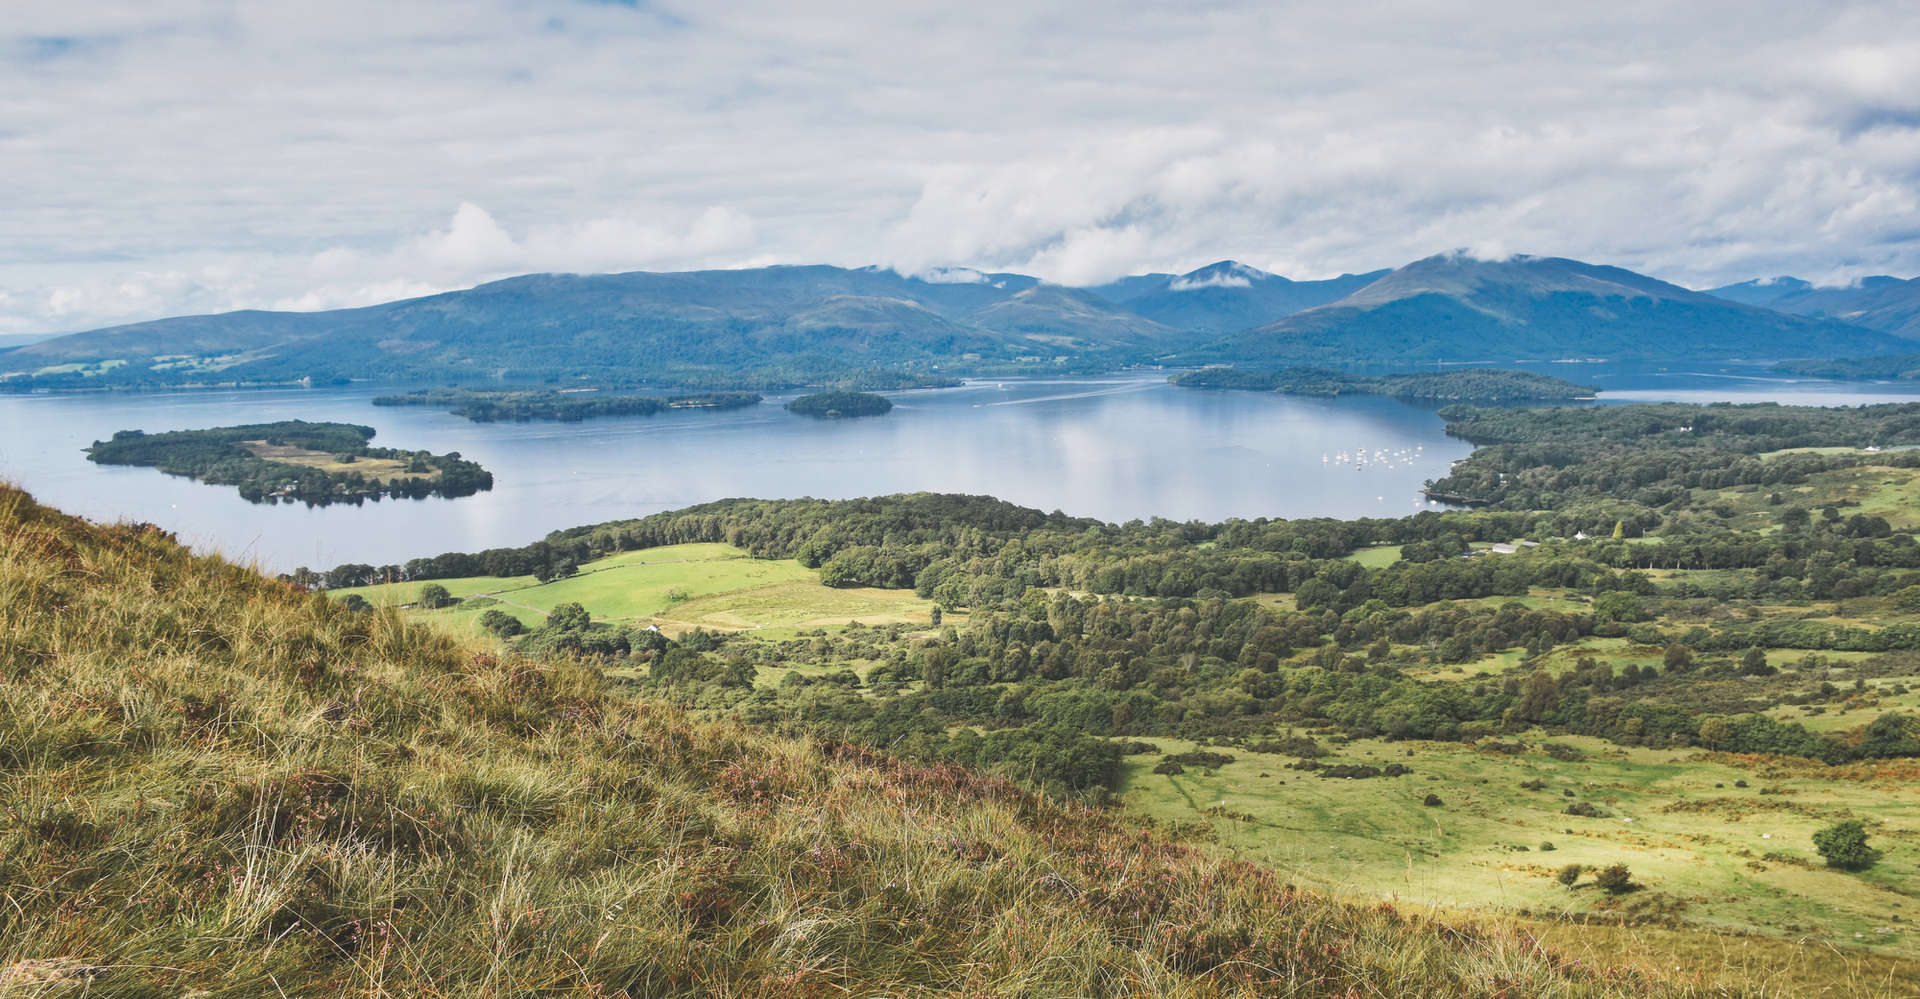 view of loch lomond from hillside showing mountains and sky